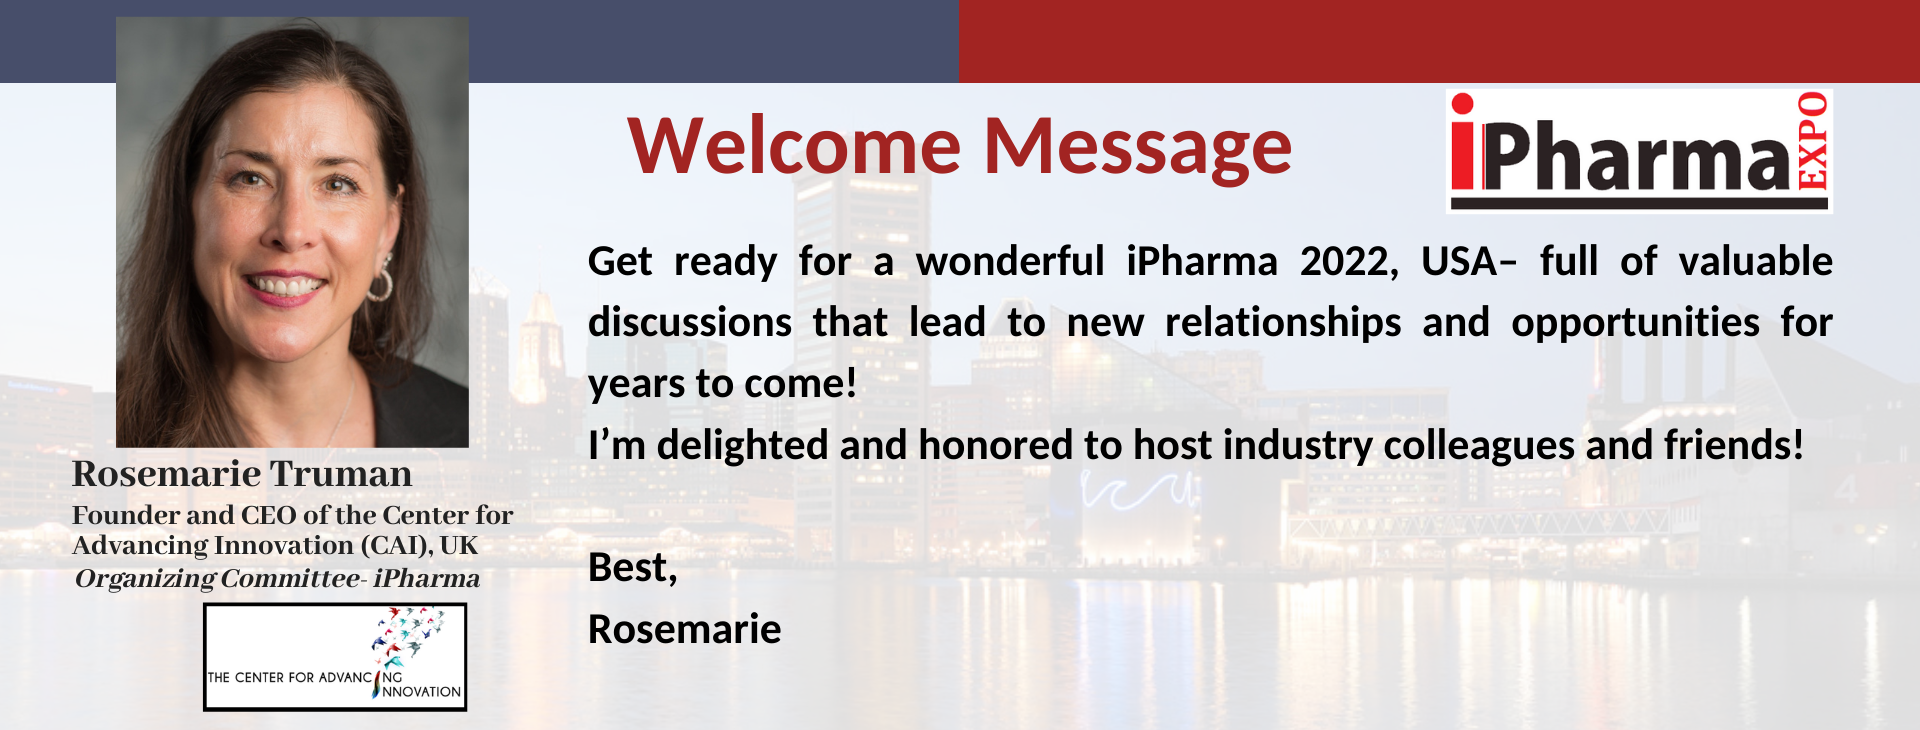 iPharma Conference Welcome Message